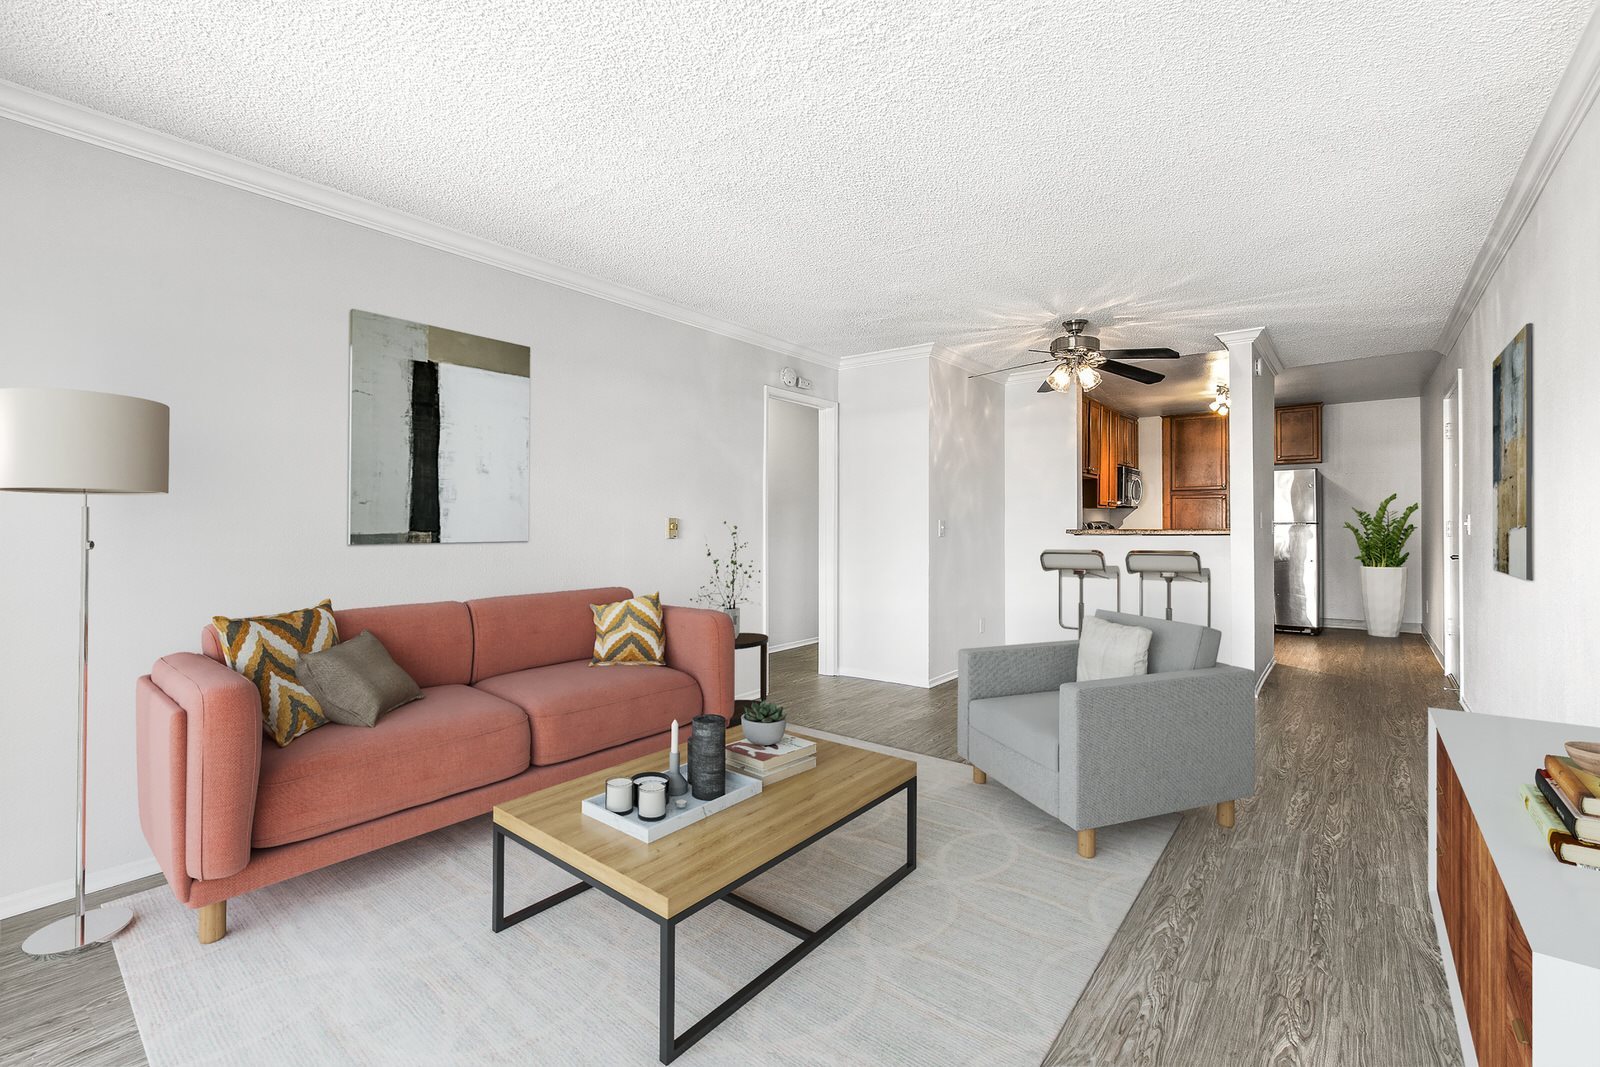 Apartments in Torrance, CA - Modern Living Room With Hardwood Flooring, Air Conditioning and Access to Outdoor Patio